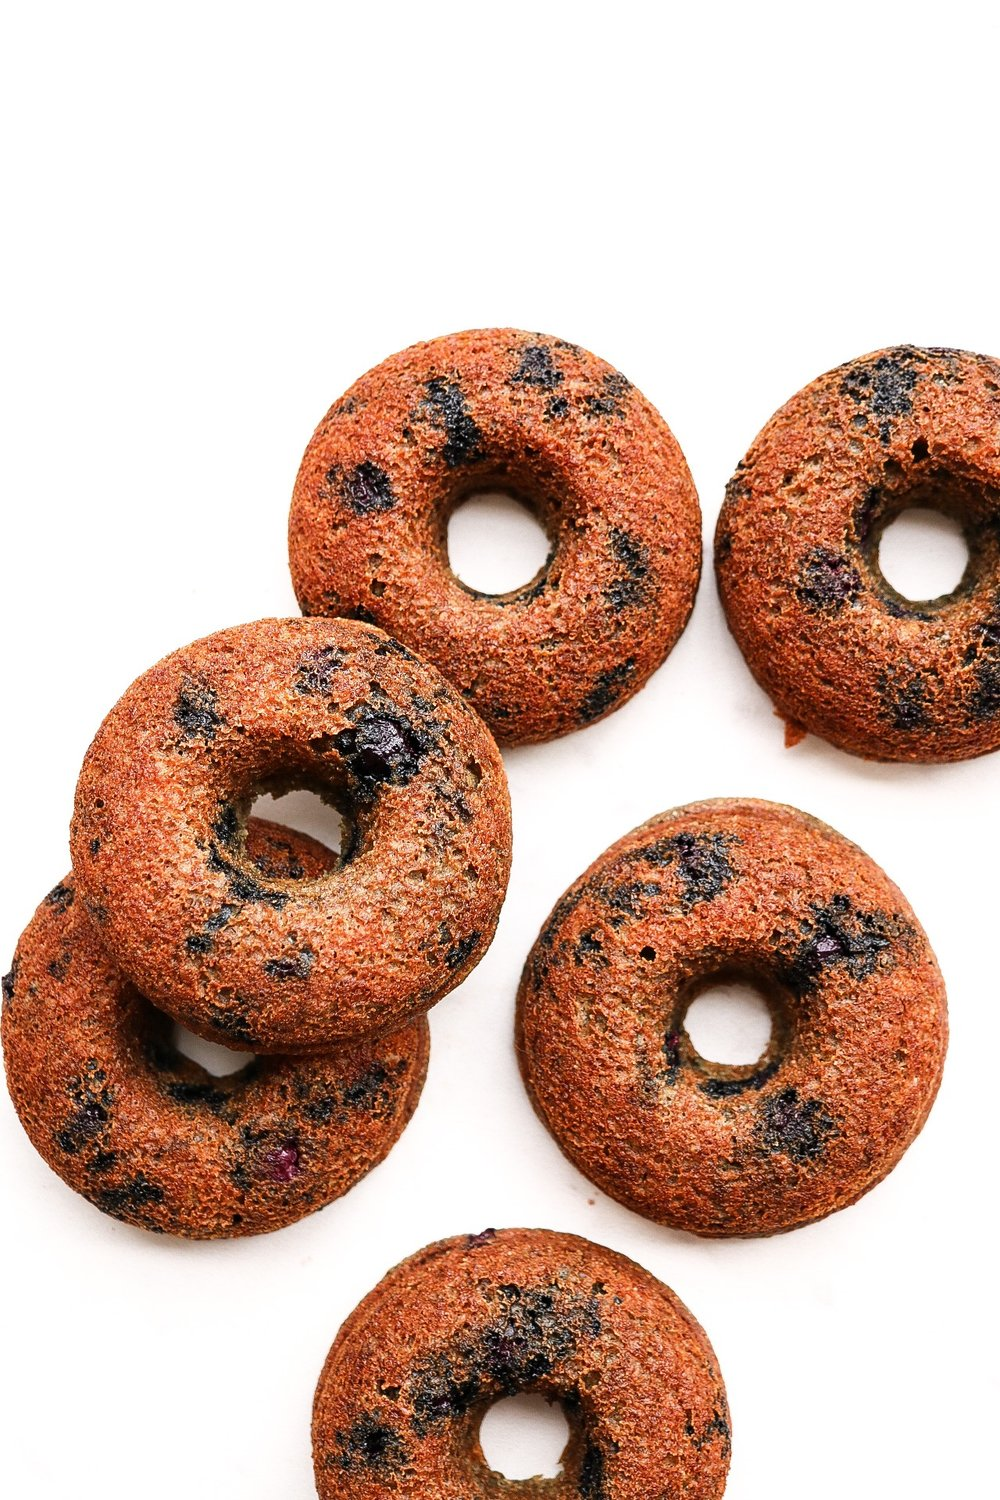 The donuts once they're done baking! Allow them to cool before adding any toppings.